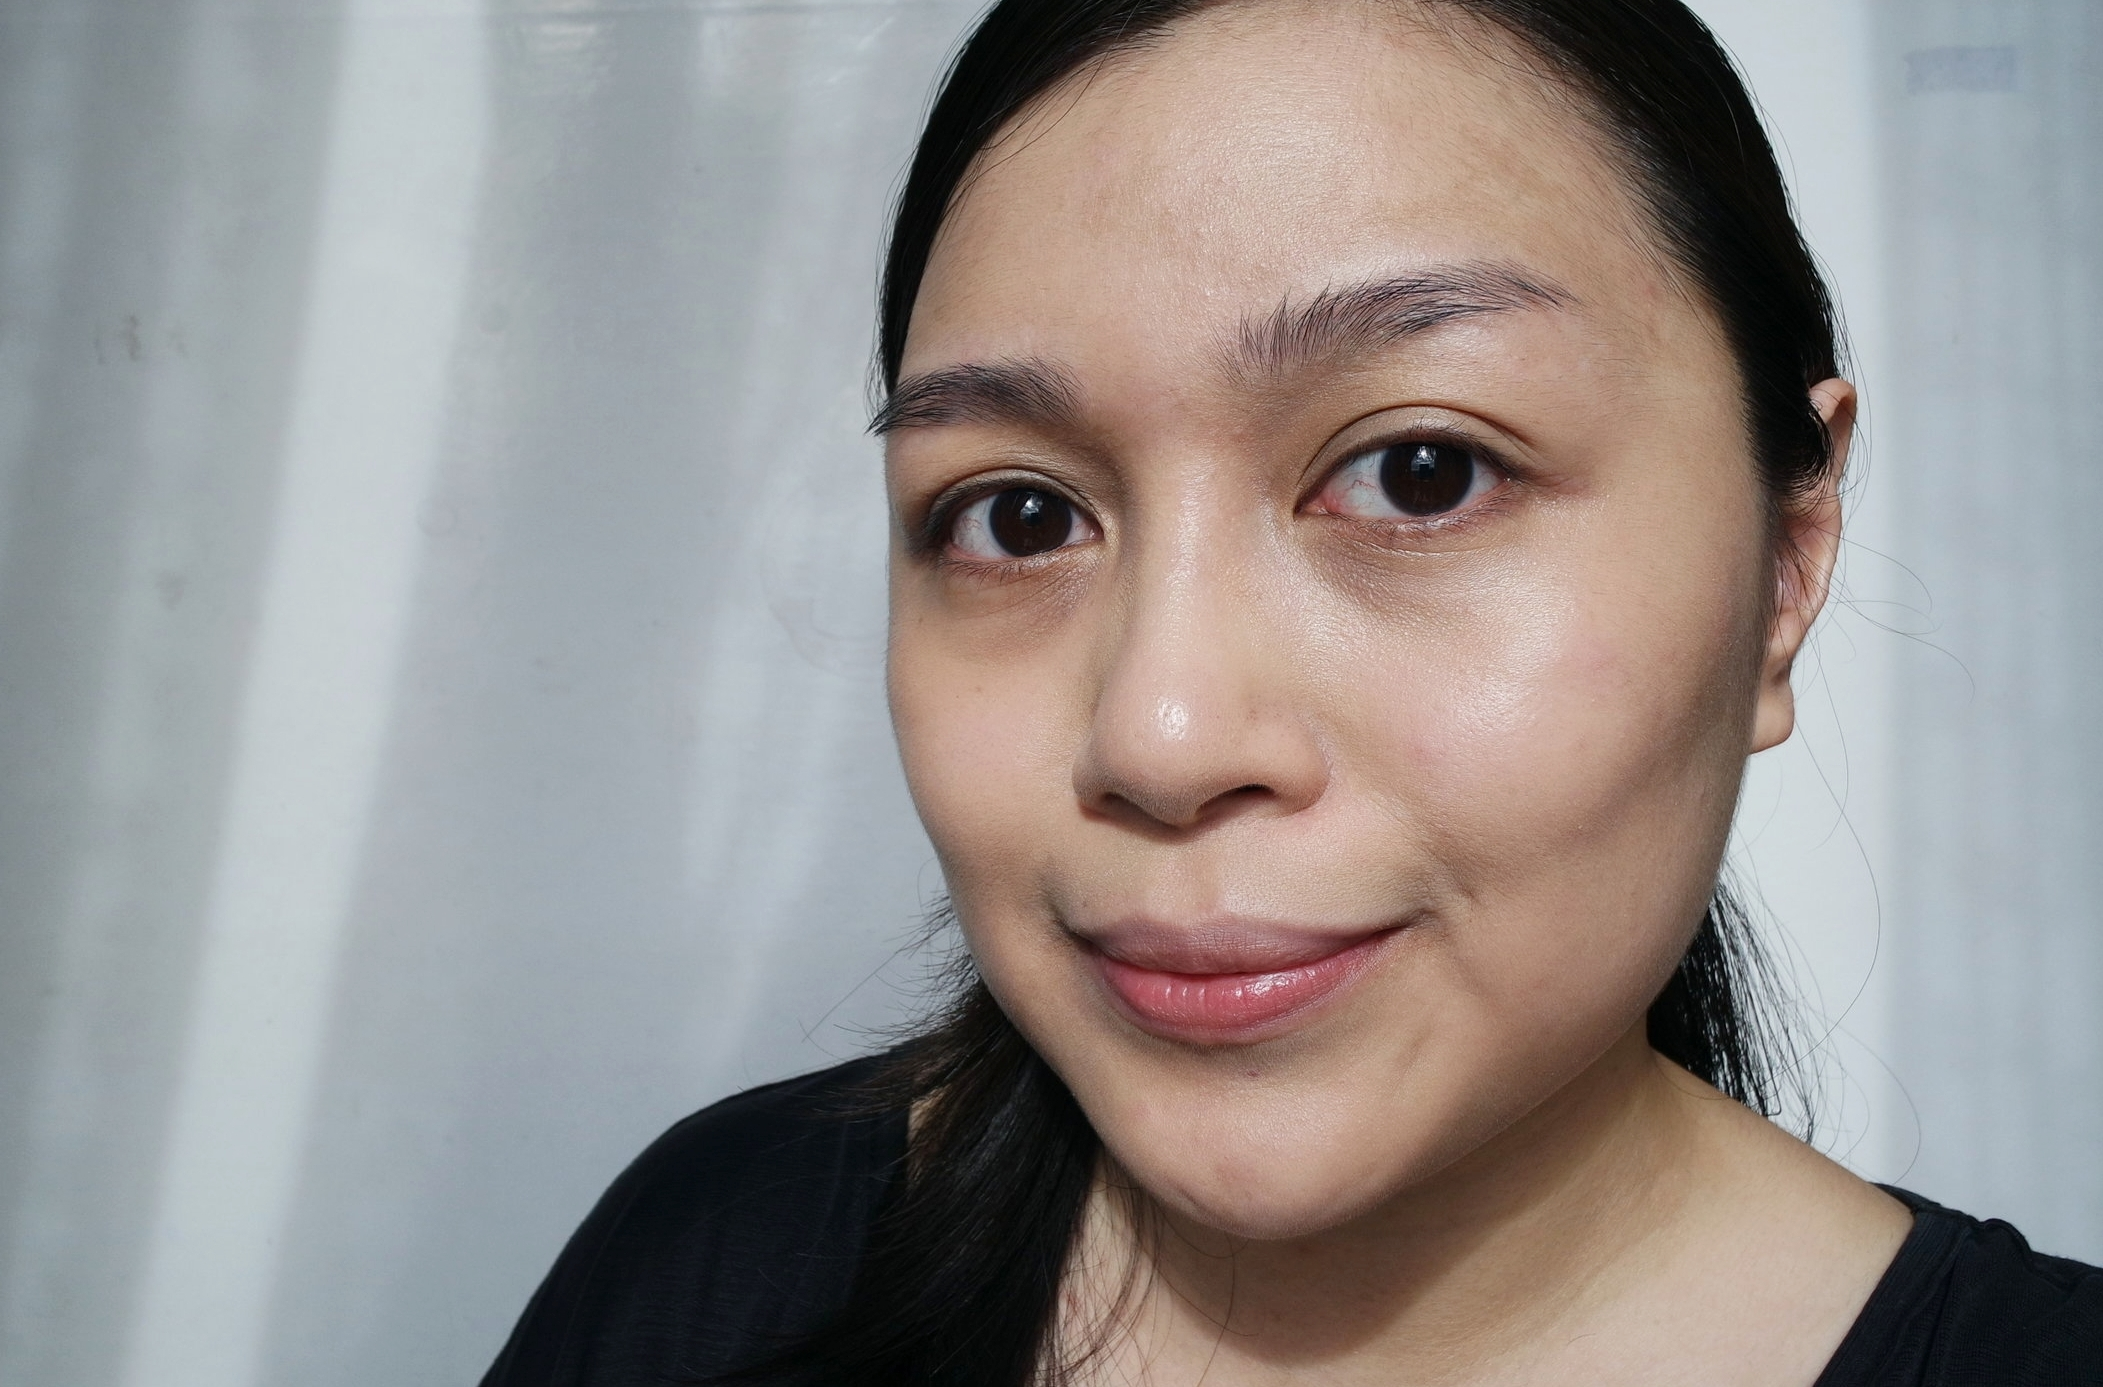 This foundation wears like second skin! And coverage is pretty good, considering that my undereye circles are usually quite prominent.